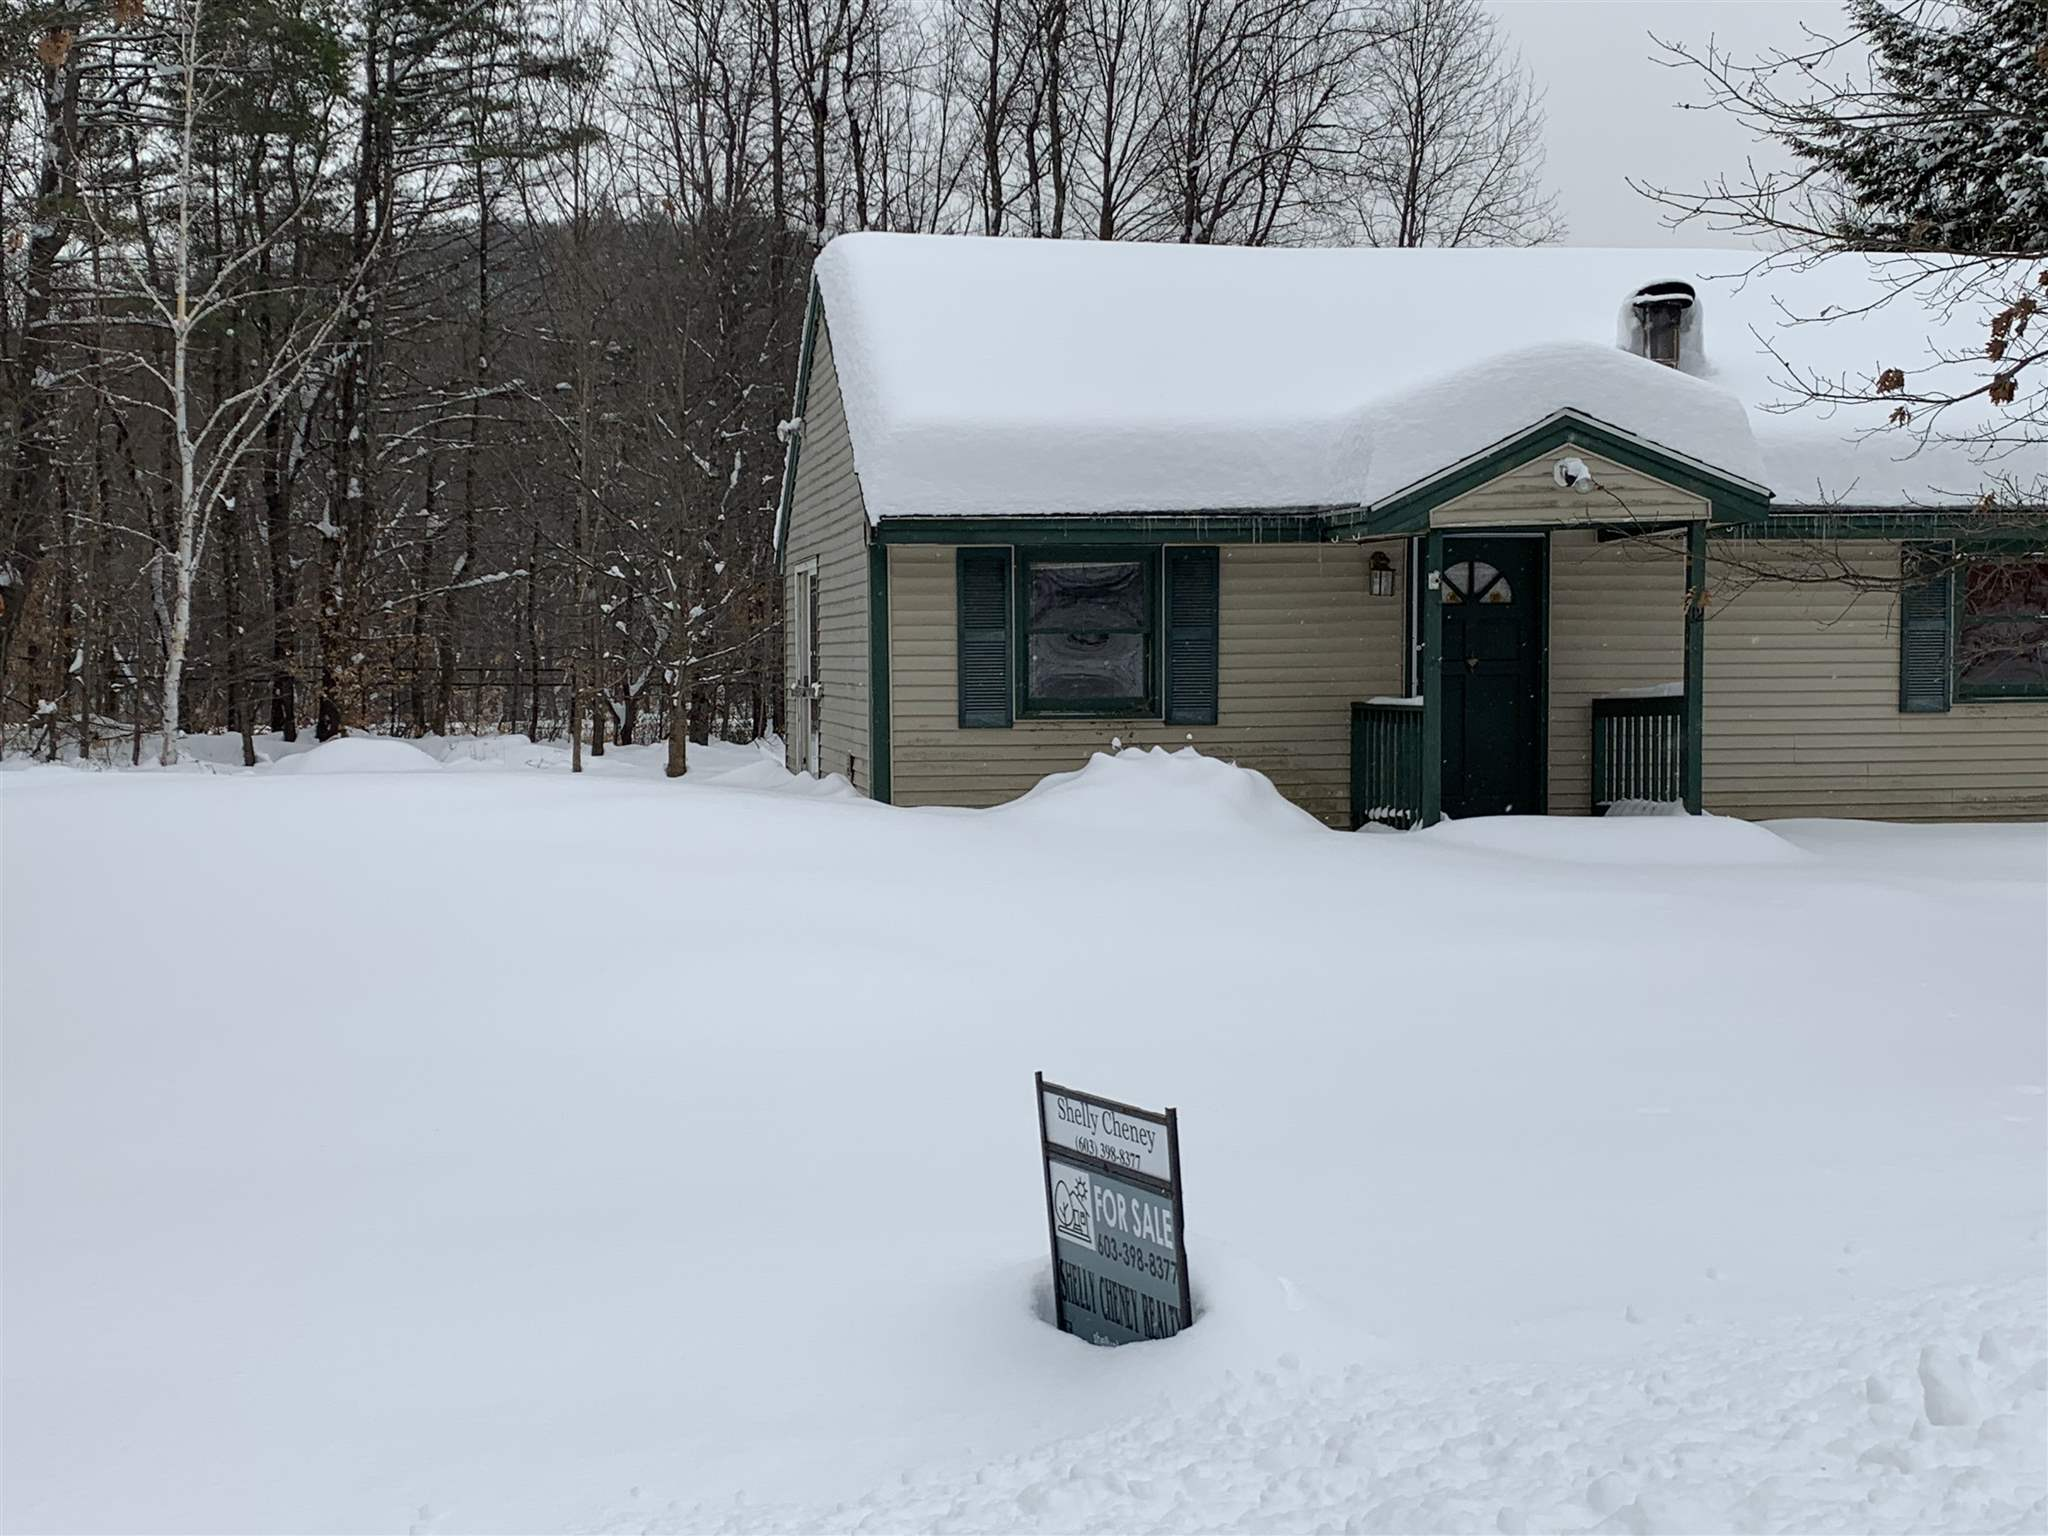 MLS 4834042: 12 Old Town Road, Hill NH